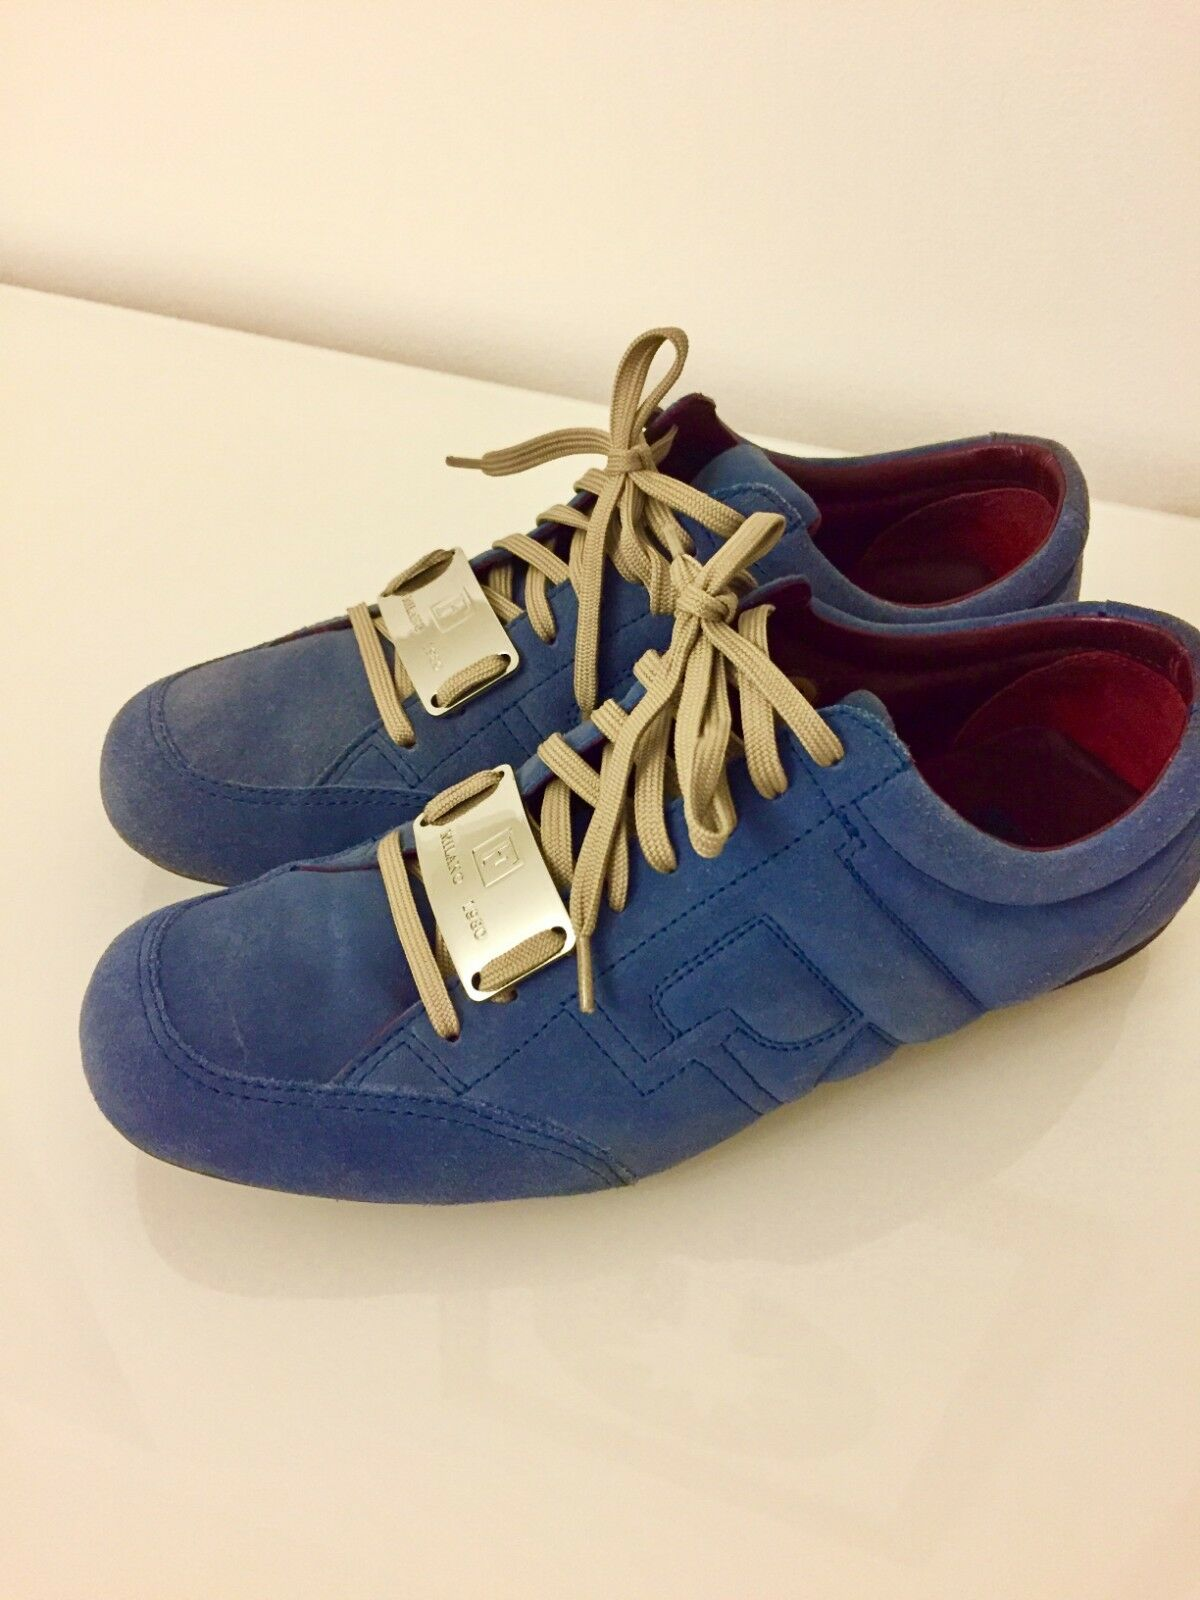 1a51c4ad6 GF Ferre Men Suede bluee shoes US 11 Sneakers nznnck9174-Athletic Shoes